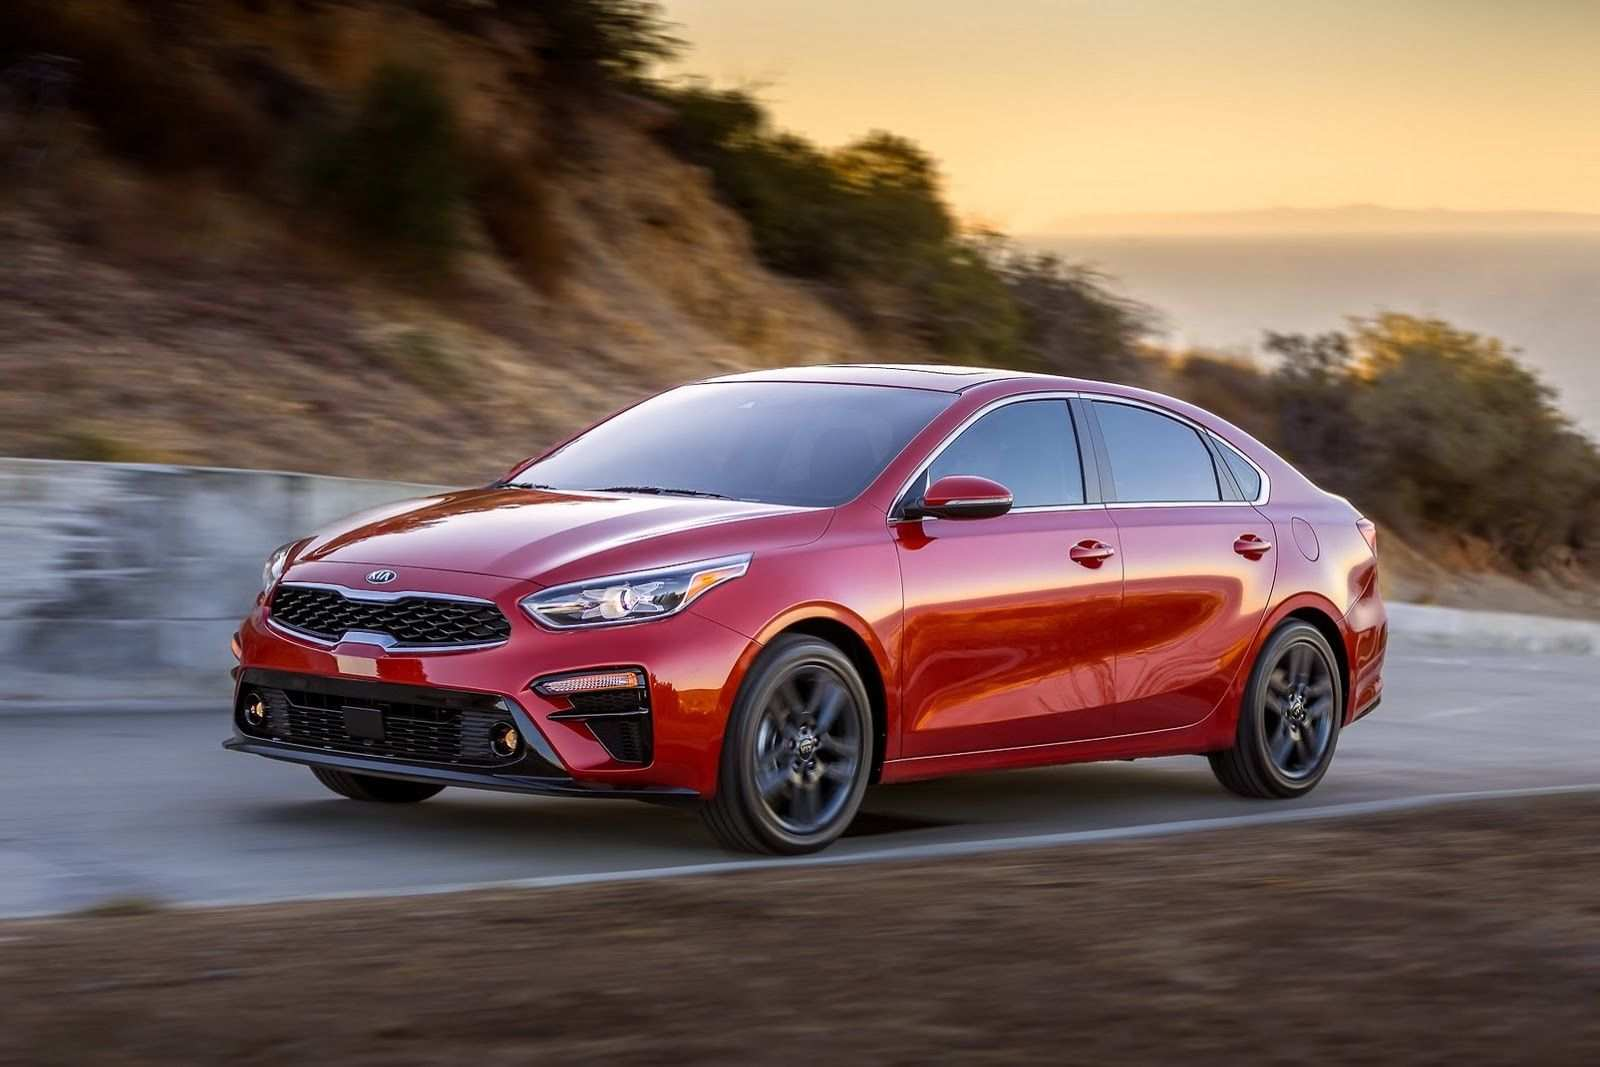 37 All New Kia 2019 Mexico Picture for Kia 2019 Mexico